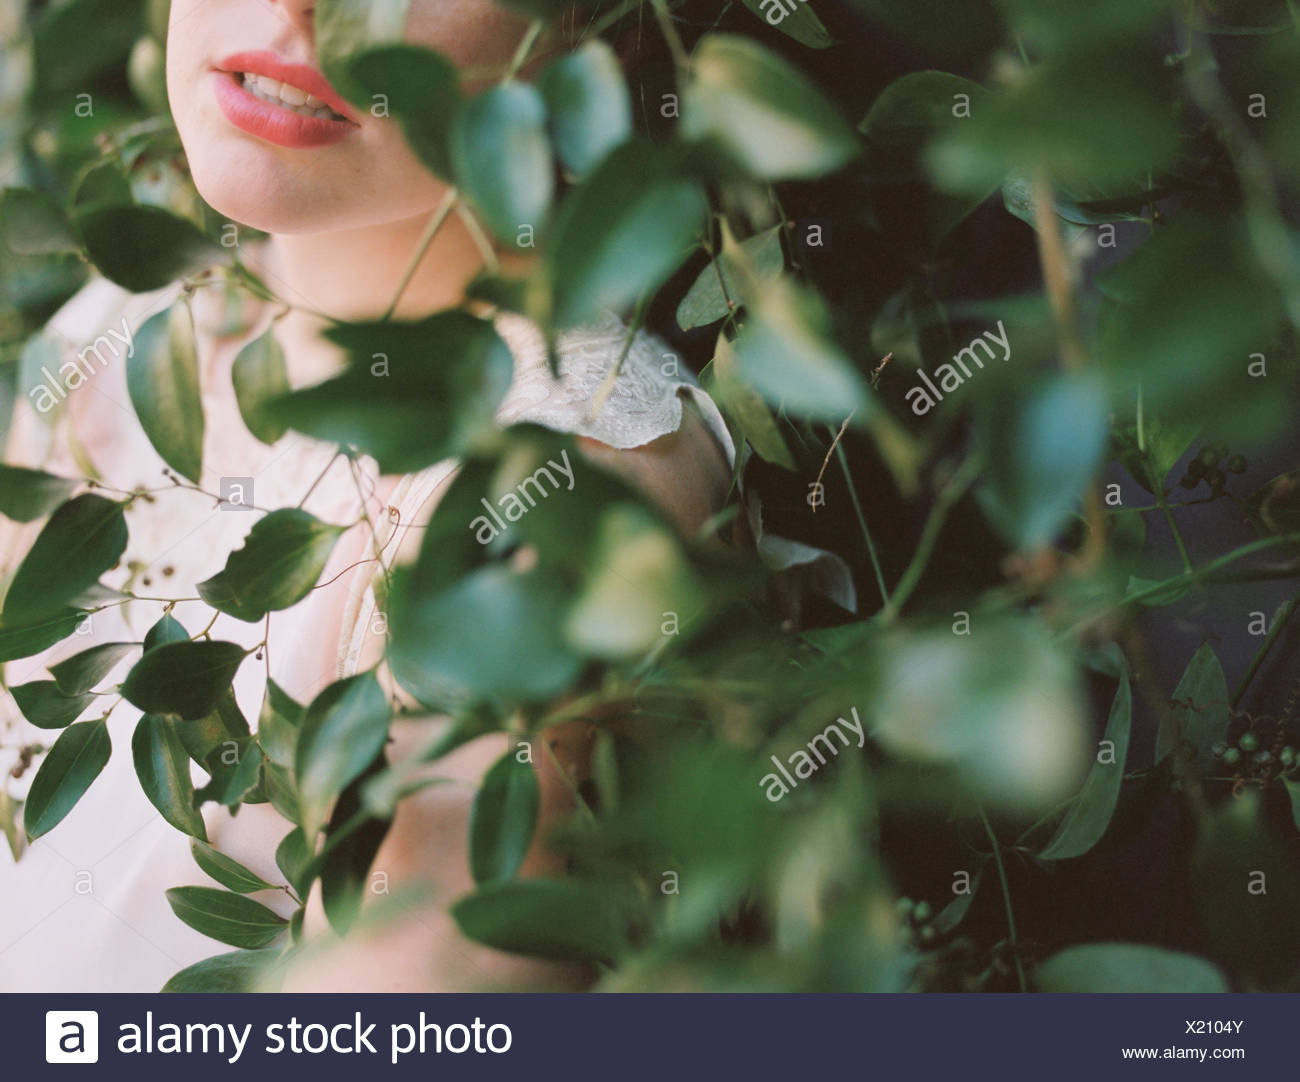 A blonde haired woman in a dress leaning against a wall with a growing vine. - Stock Image